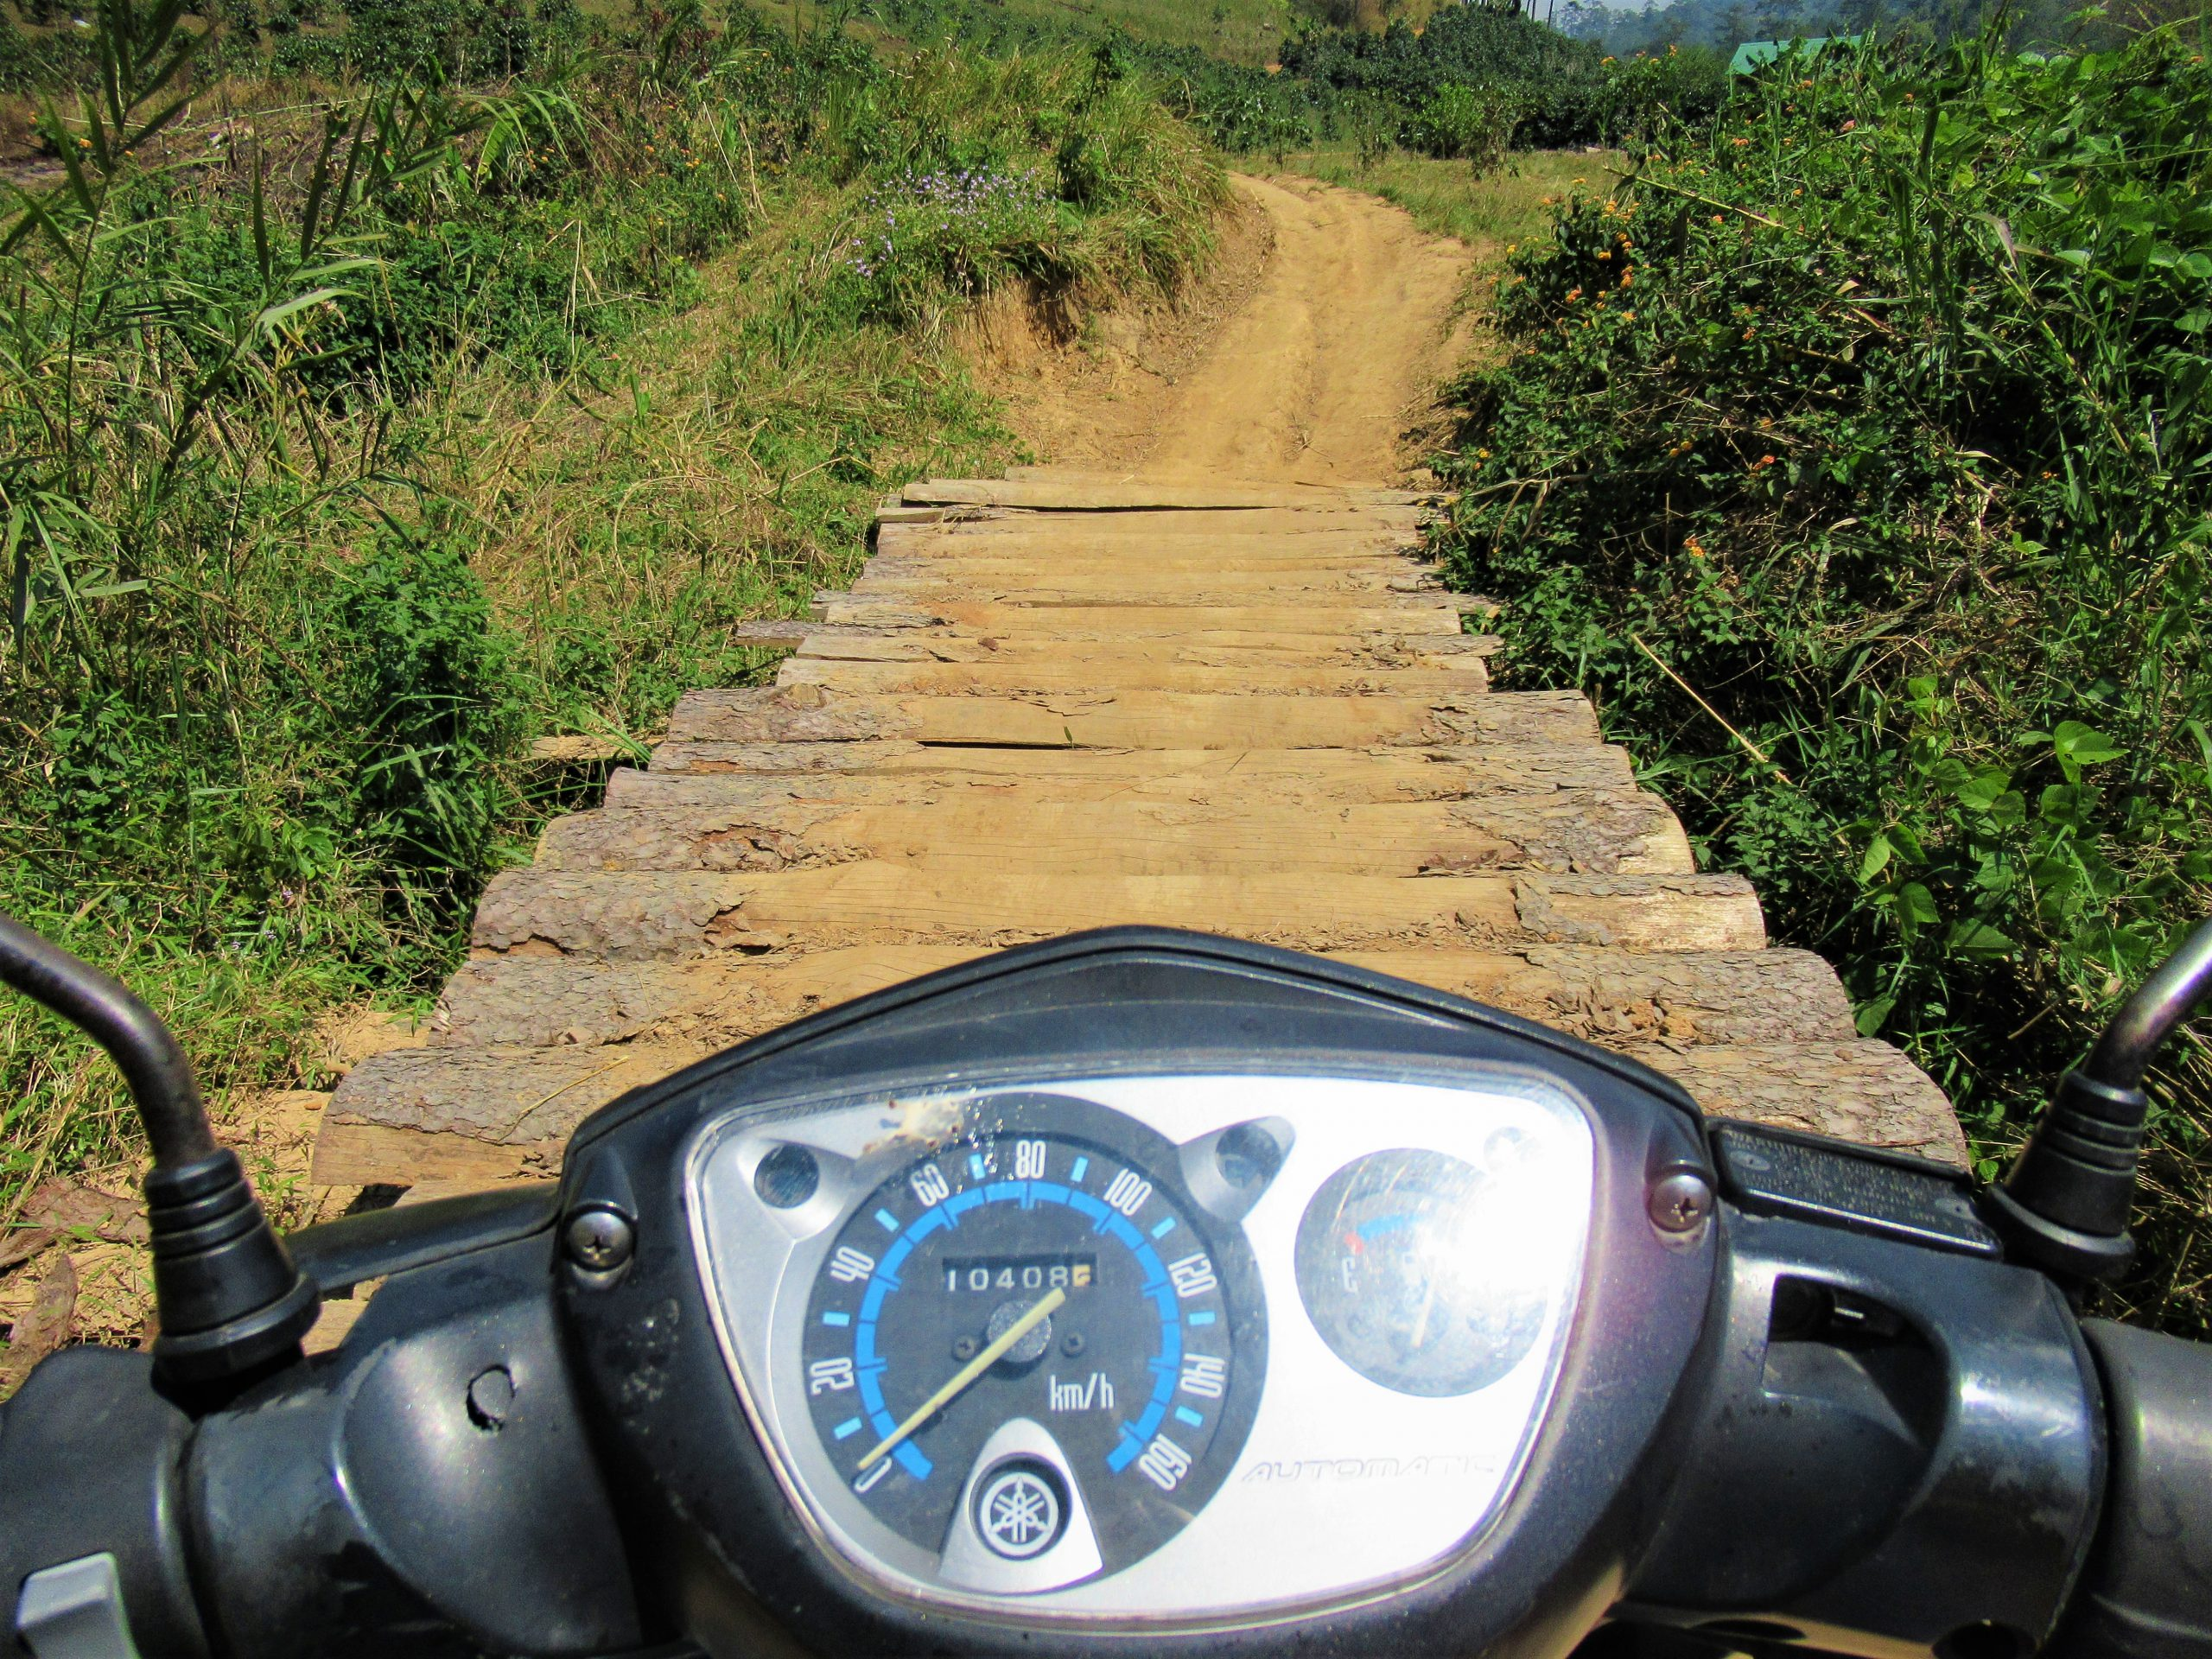 Riding in south-central Vietnam in the dry season